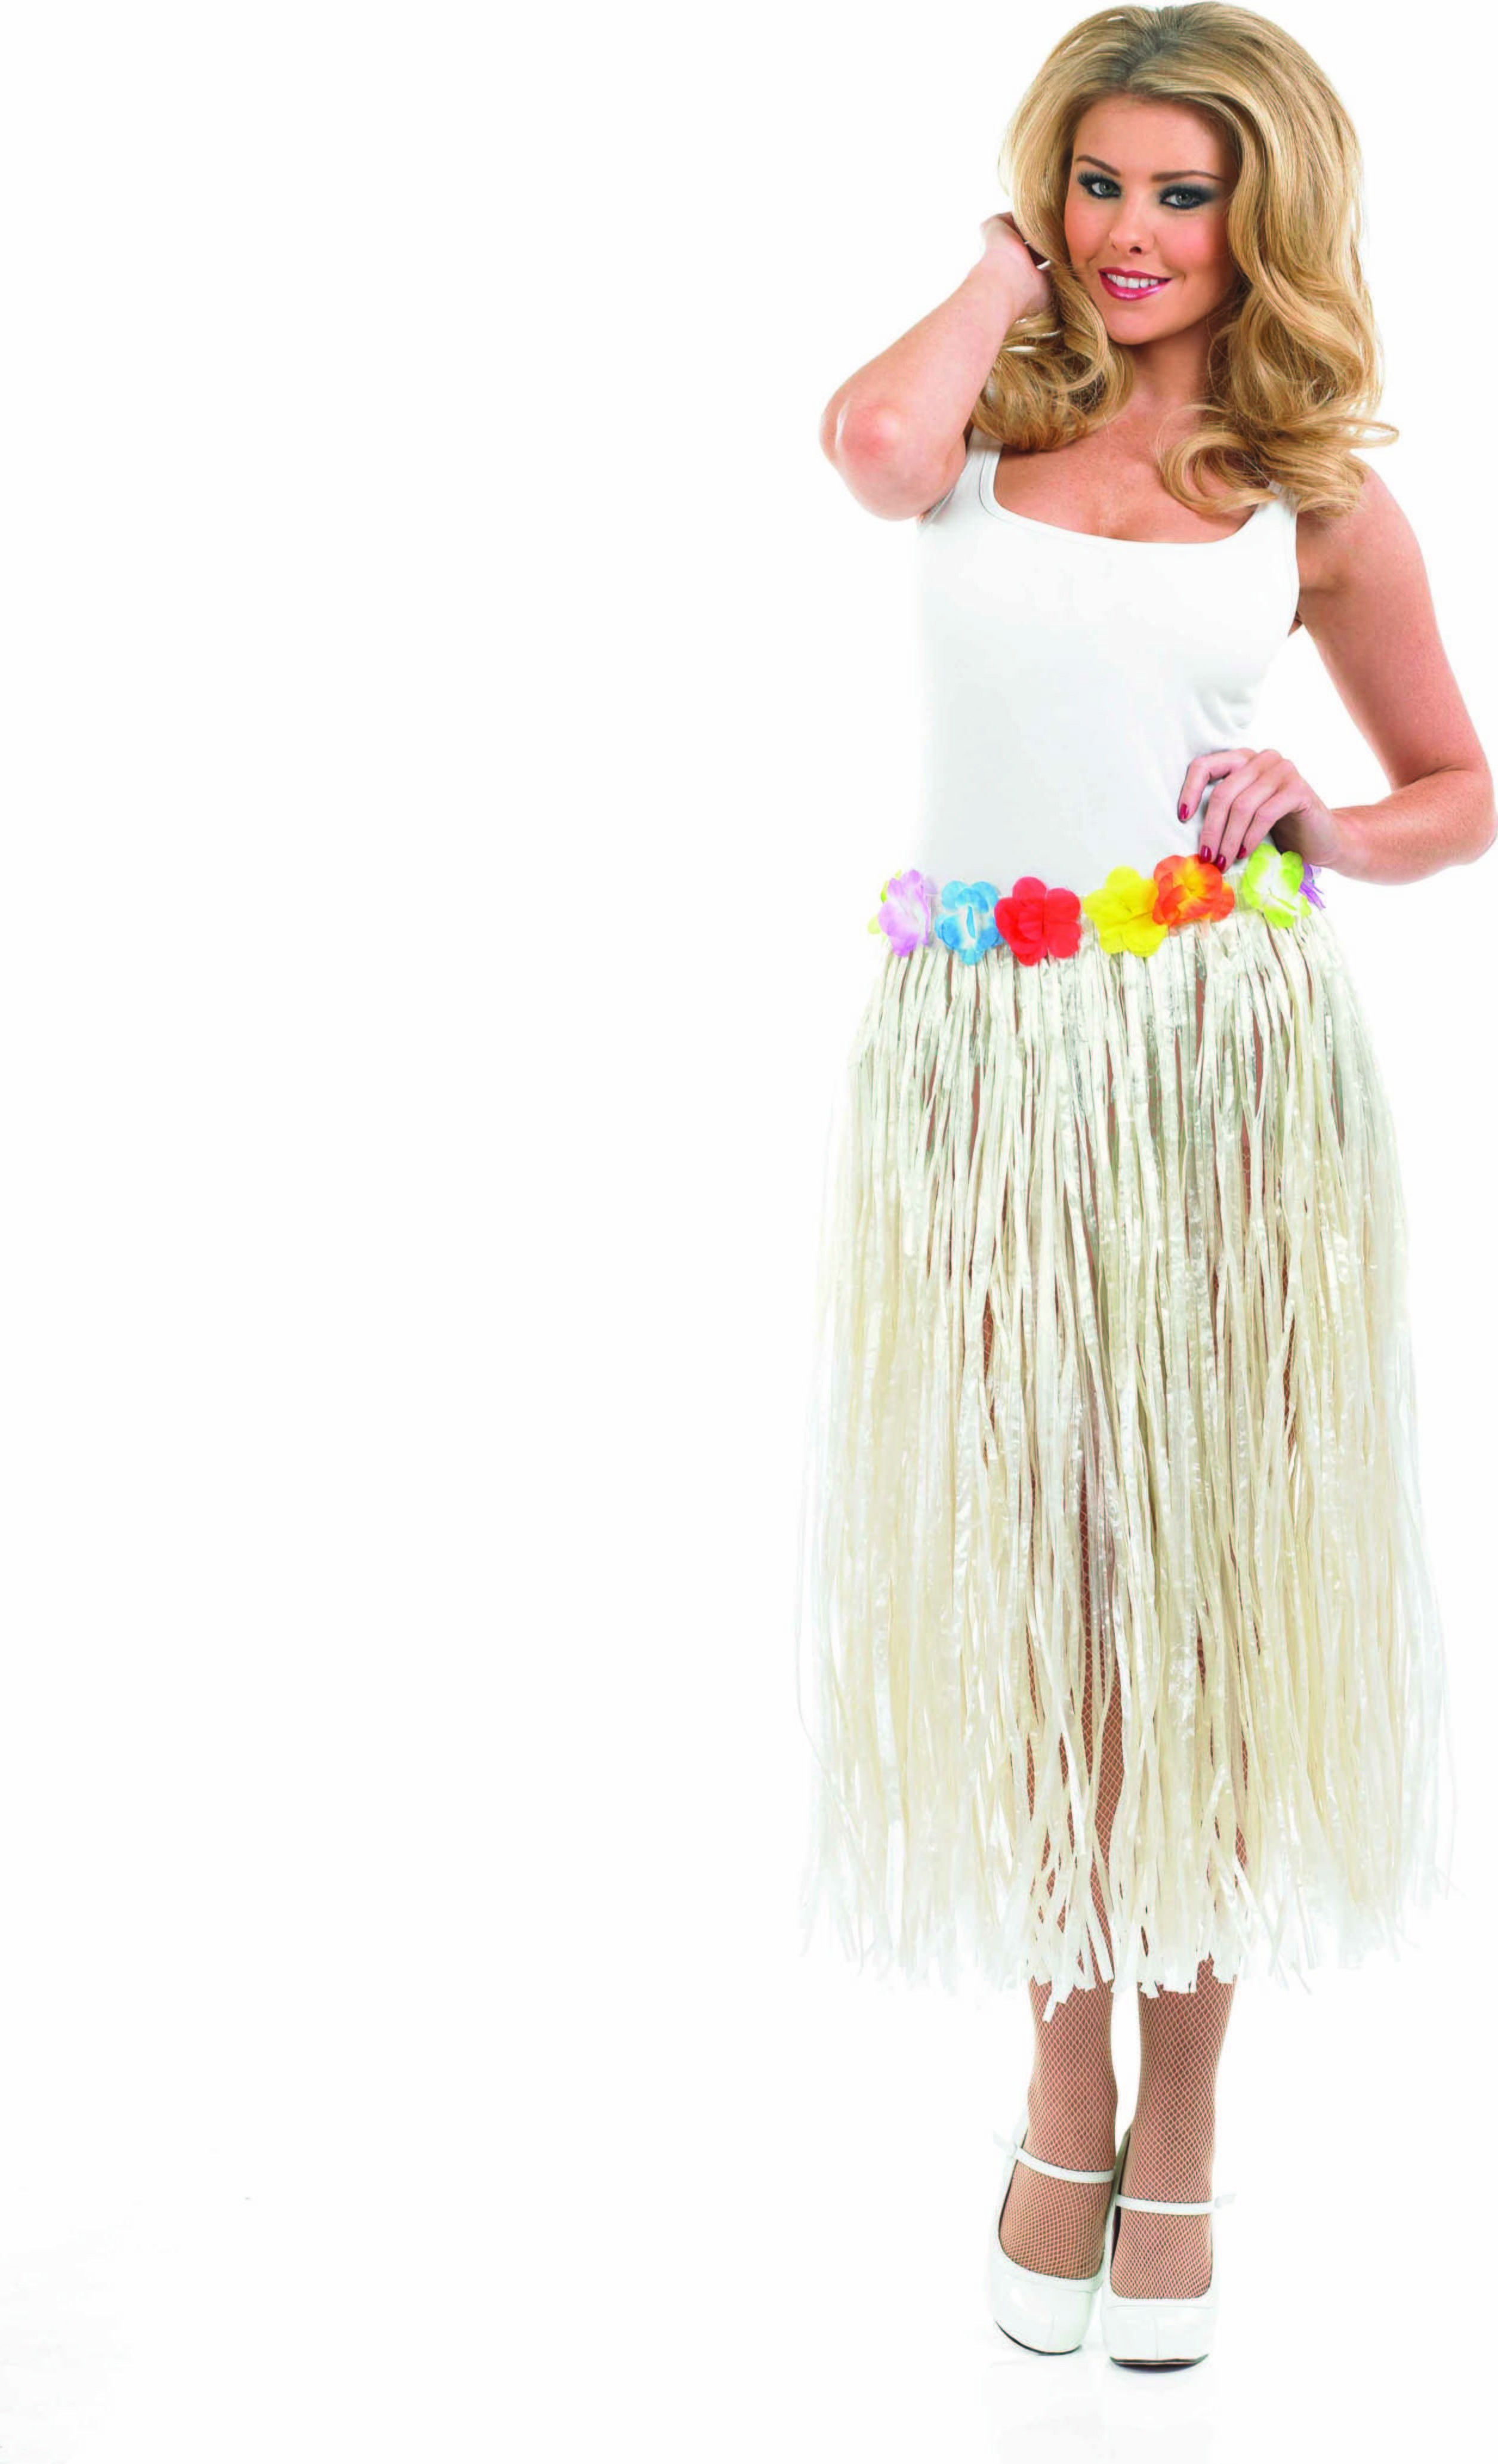 Ladies Grass Skirt With Flower Waistband Accessories - (Multicolour)